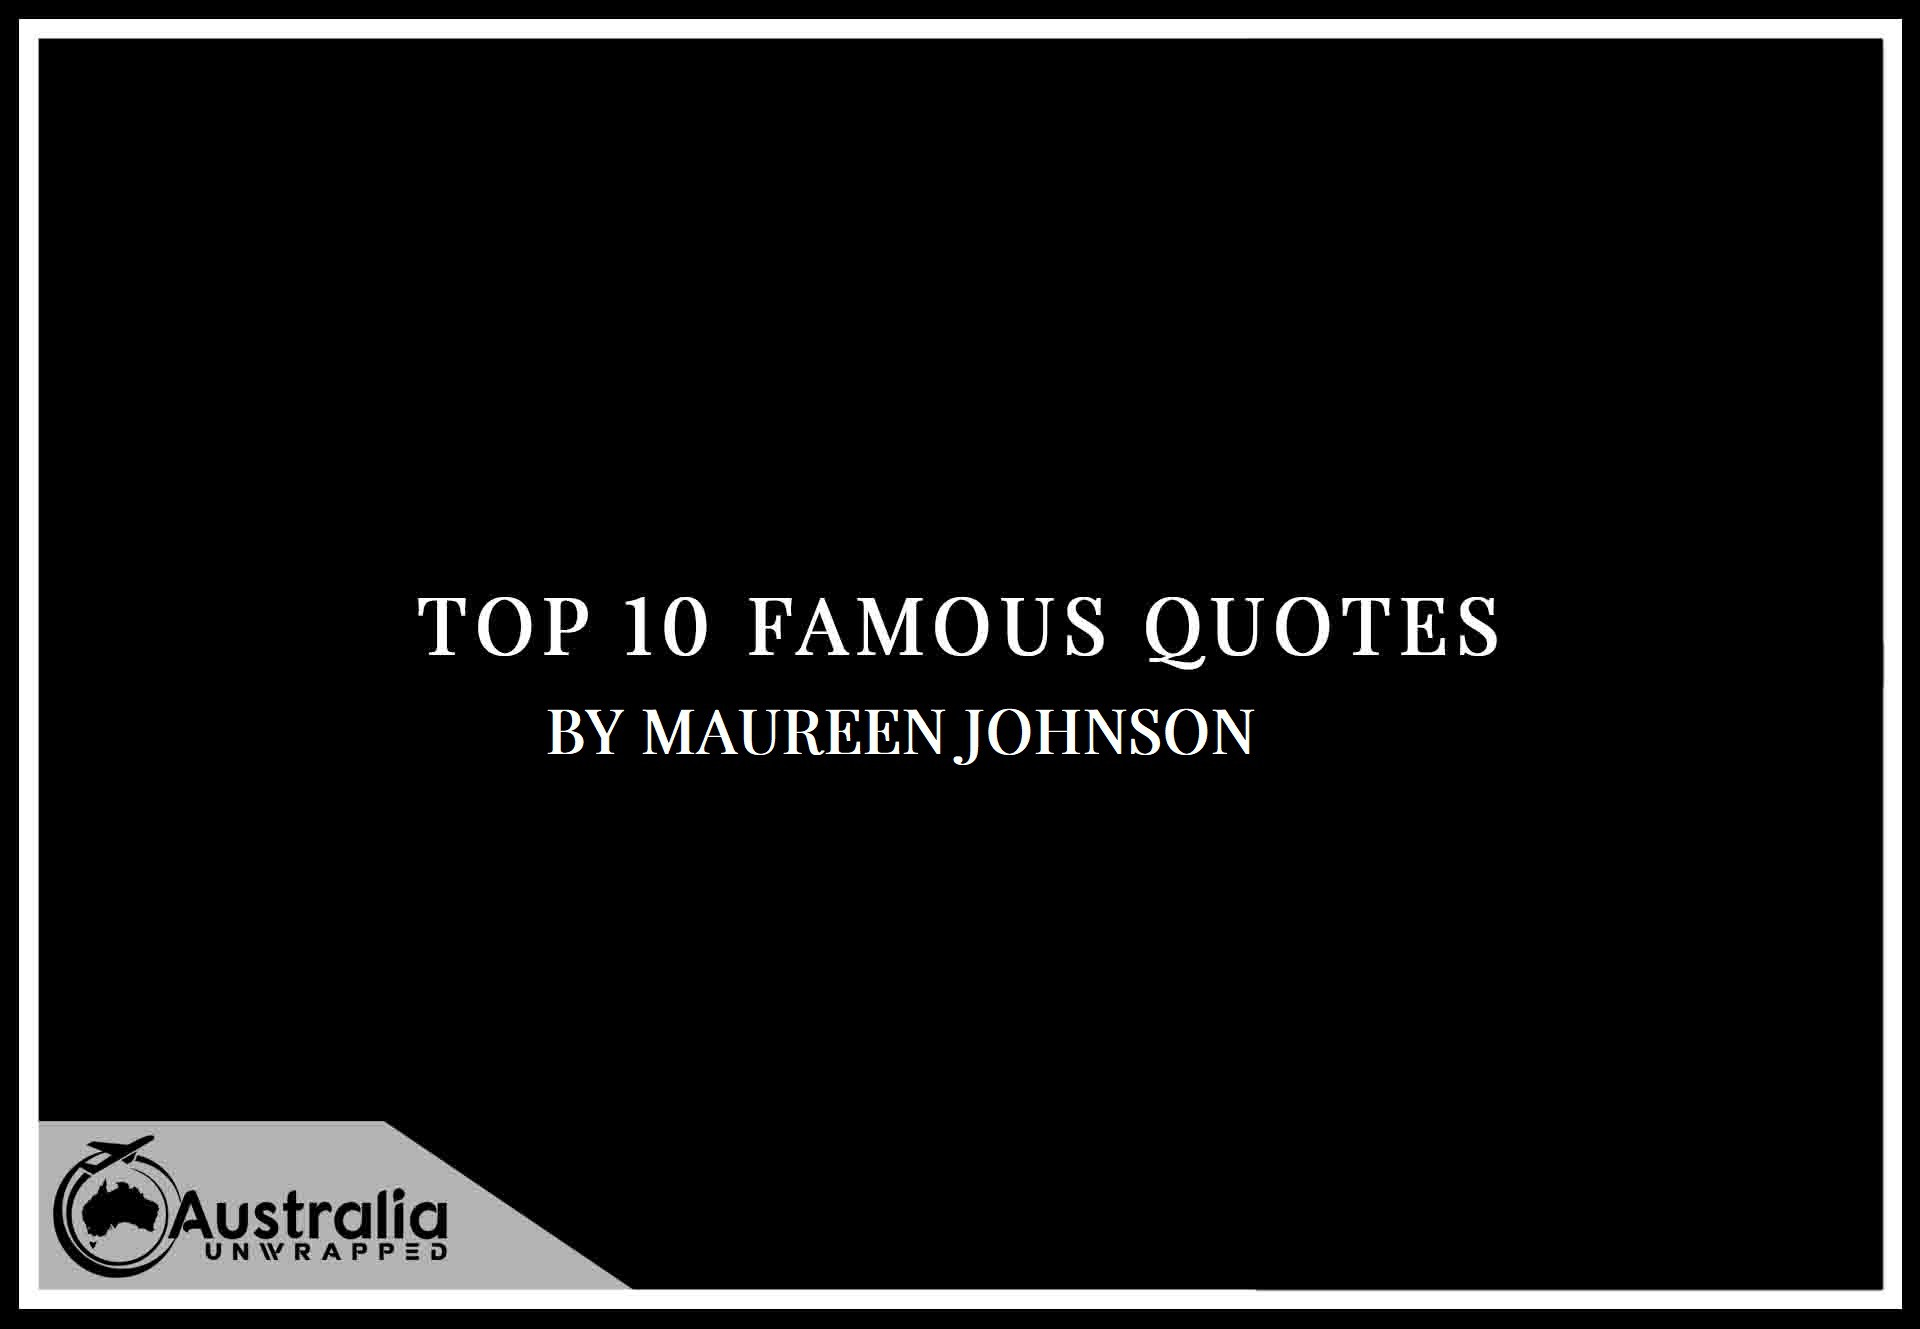 Top 10 Famous Quotes by Author Maureen Johnson